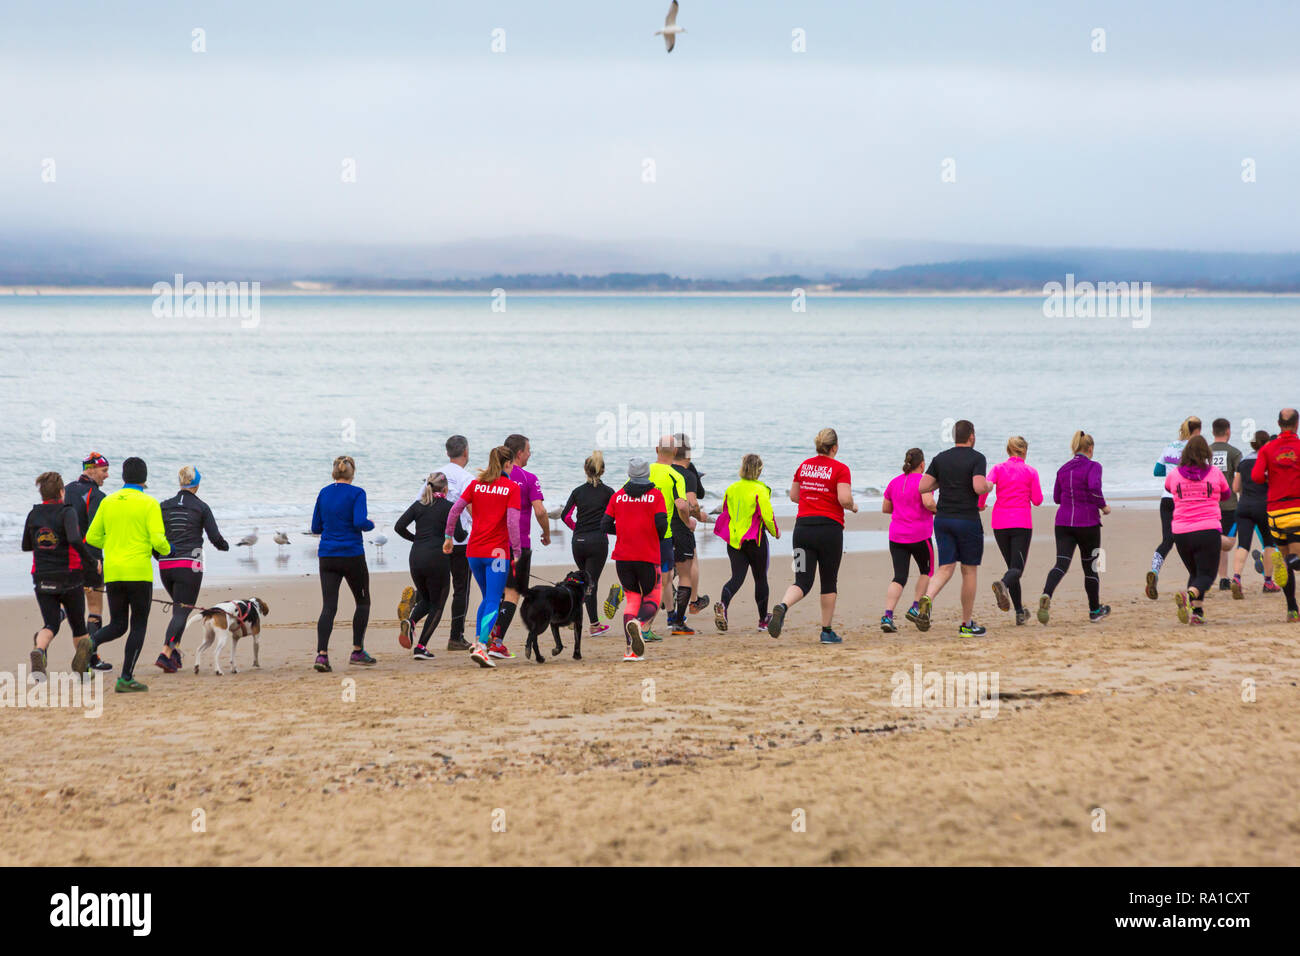 Bournemouth, Dorset, UK. 30th December 2018. Participants take part in the Beach Race, Race the Tide, a low tide beach run along the beautiful shoreline of Bournemouth beach towards Sandbanks beach. Runners run the 5k or 10k race along the seashore and over the groynes before the tide comes in - good exercise after the excesses of Christmas! Credit: Carolyn Jenkins/Alamy Live News Stock Photo